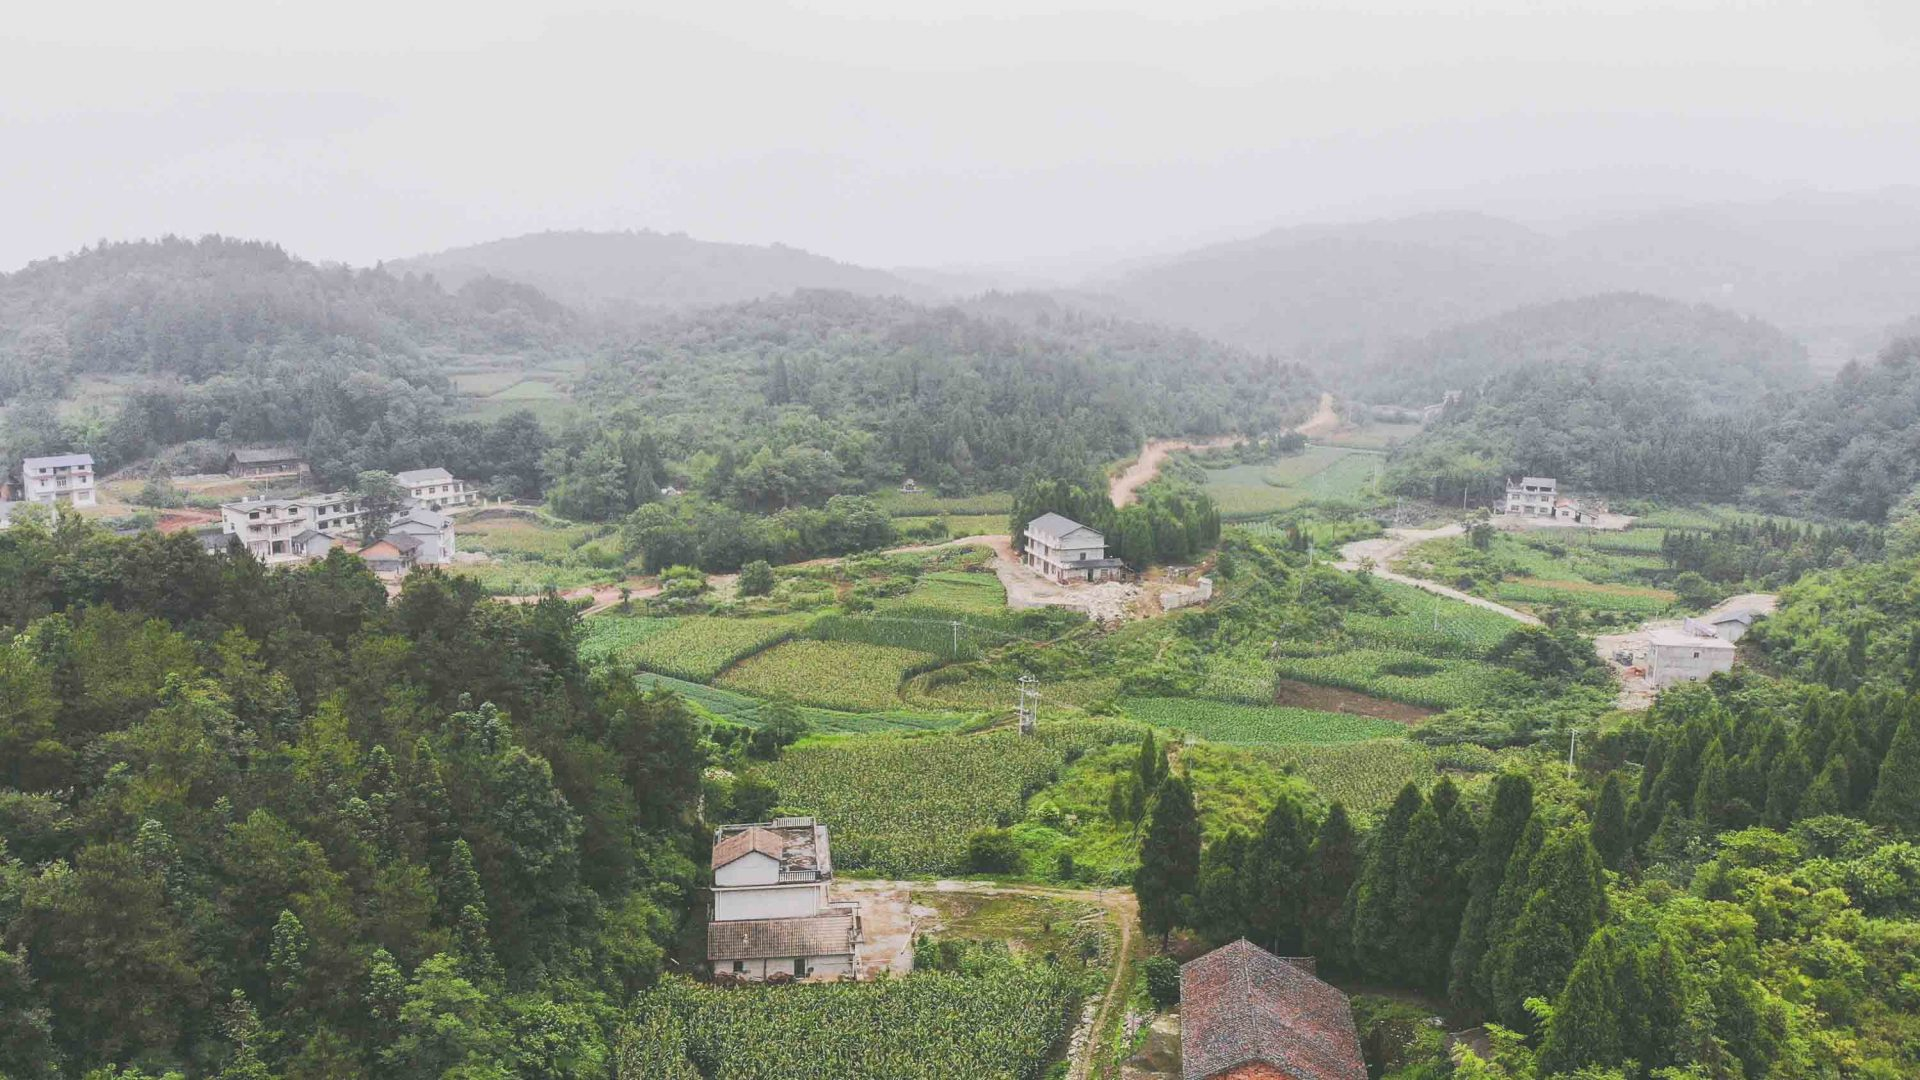 Tujia villages in the mountains near Zhangjiajie, China.